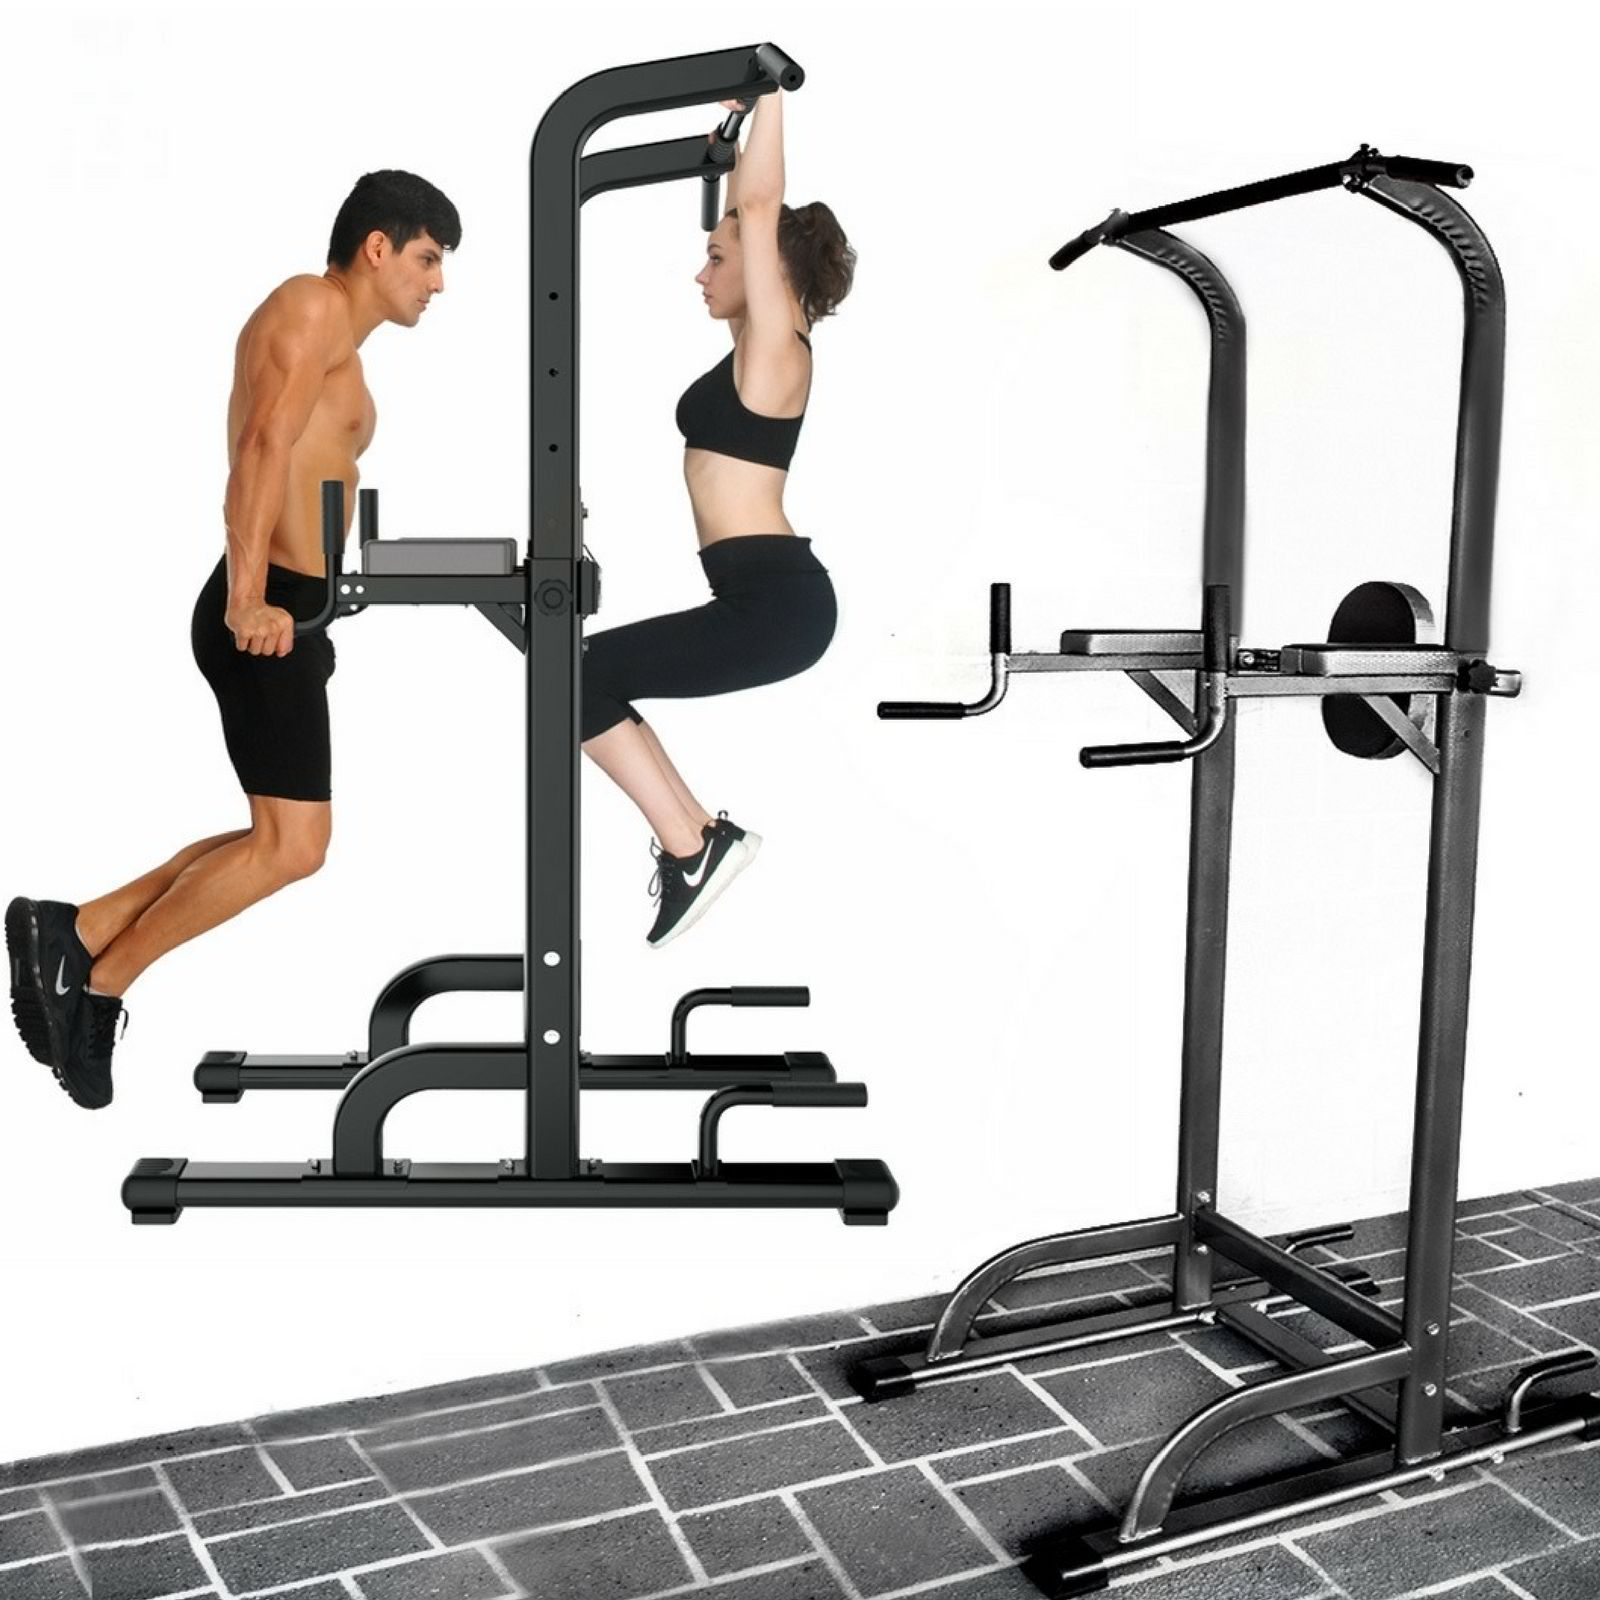 Pull Up Bar at Home Exercises